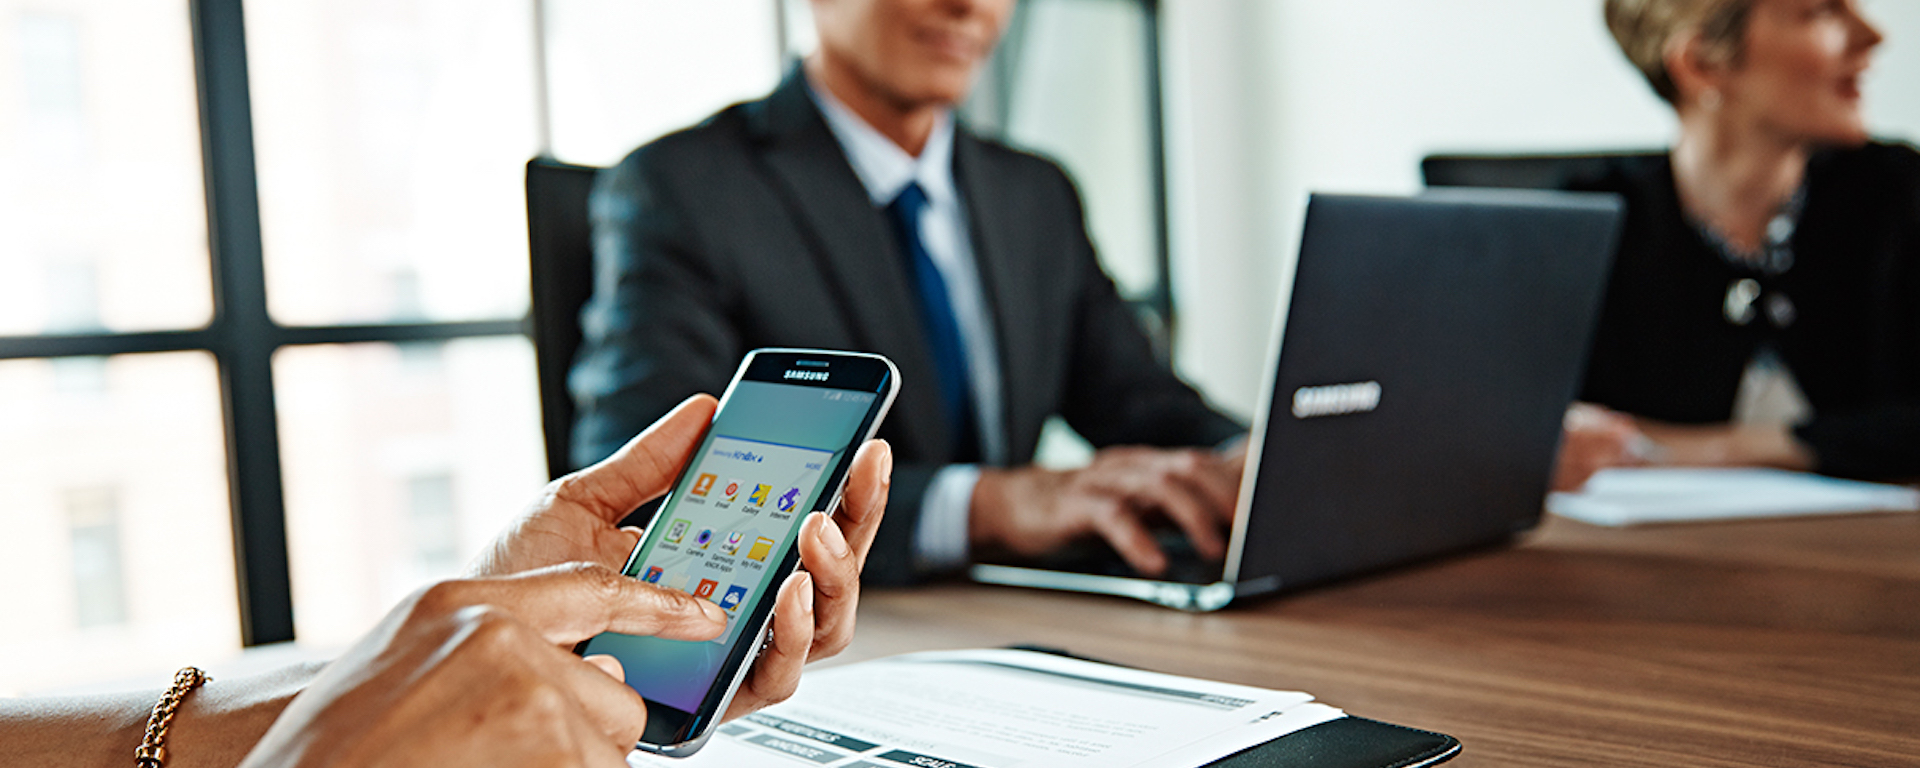 Mobility management and security is a concern for government agencies as they move toward a more connected workplace.